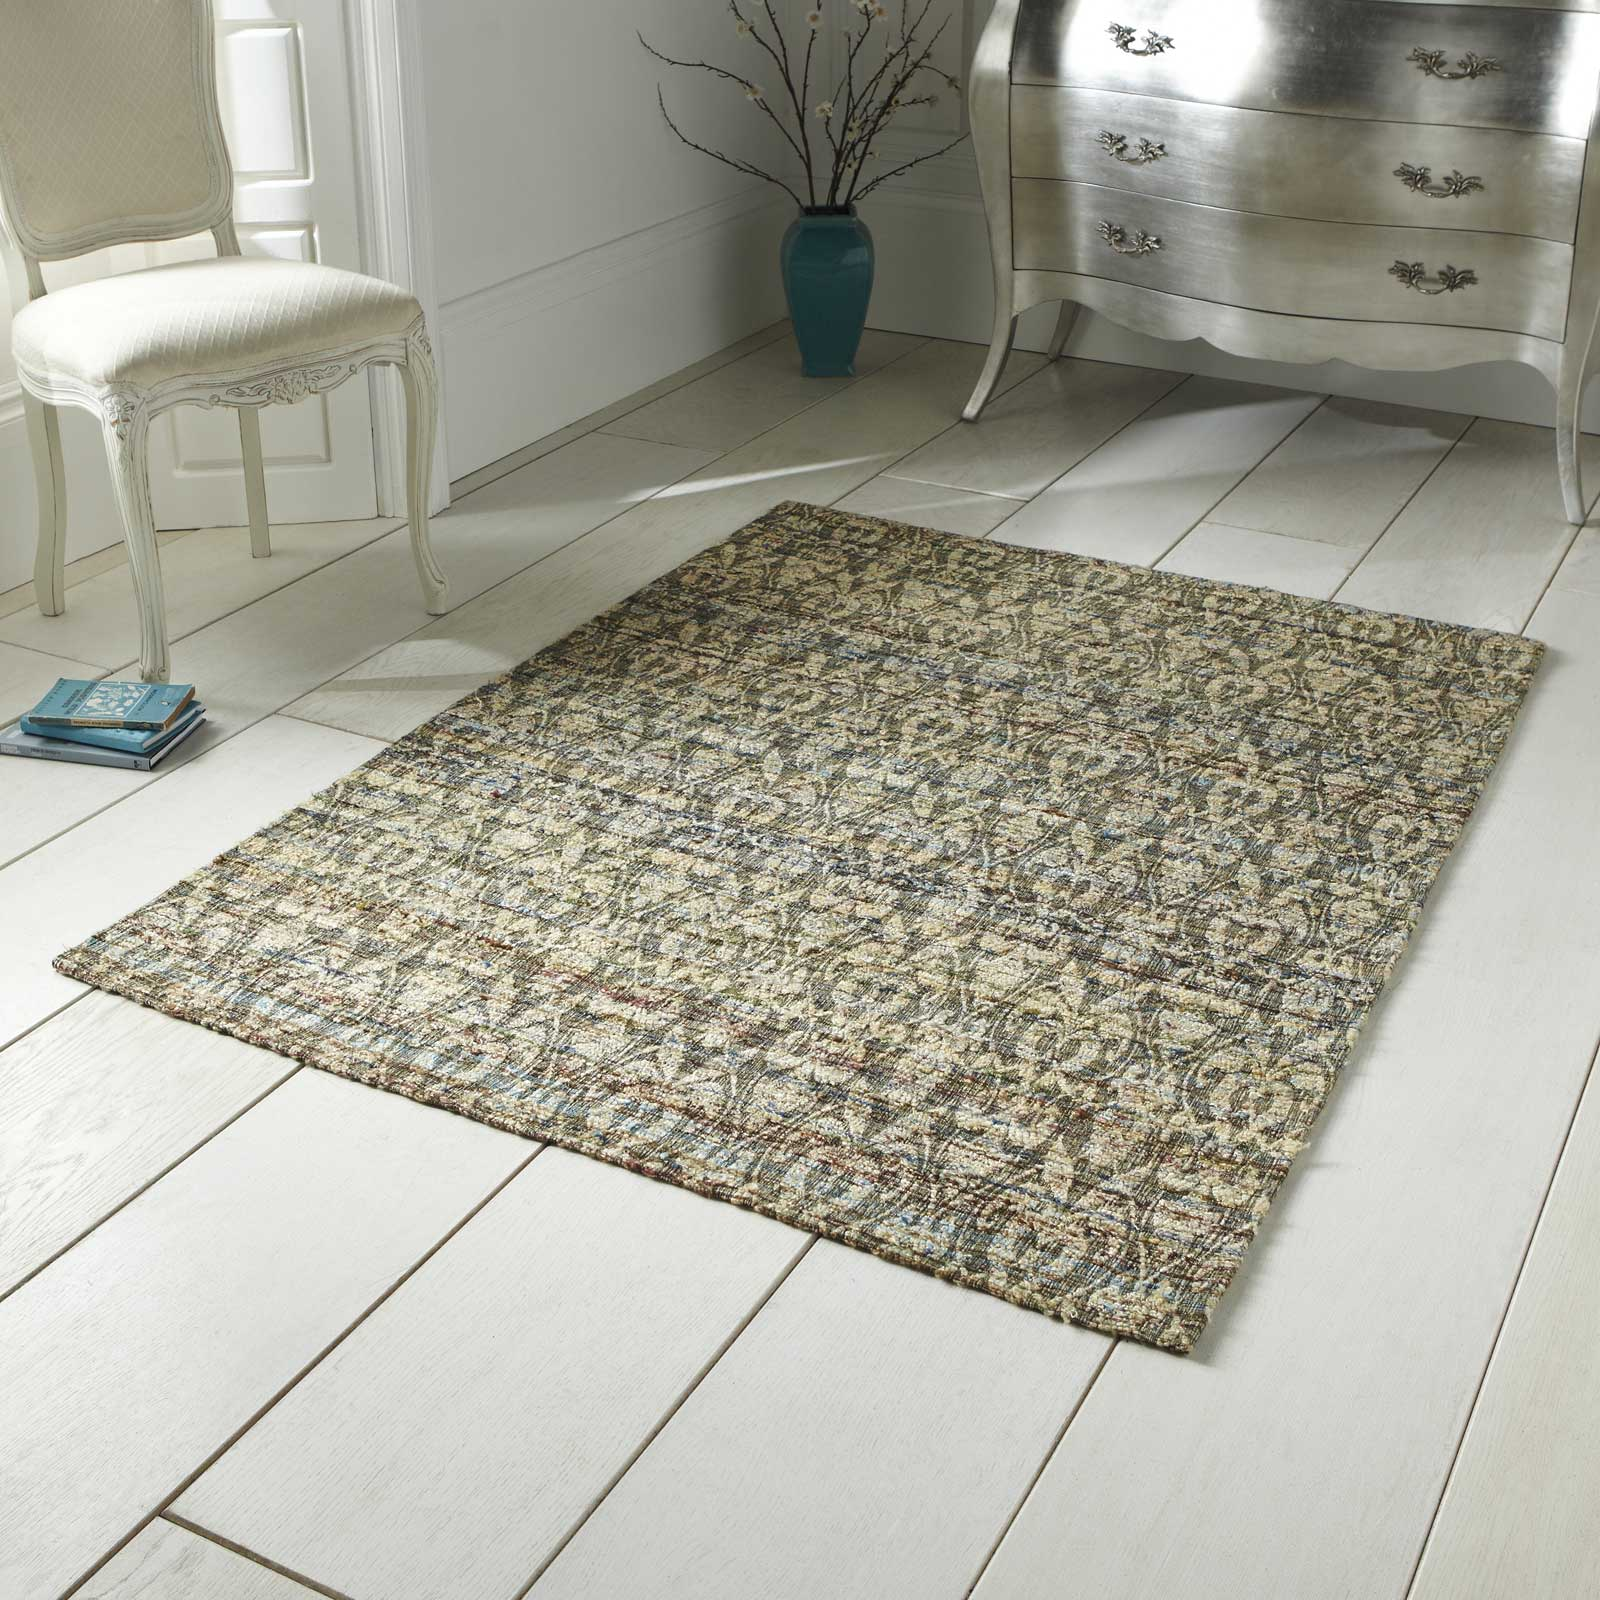 Satin Rugs ST10 Hand Made Indian Silk in Beige